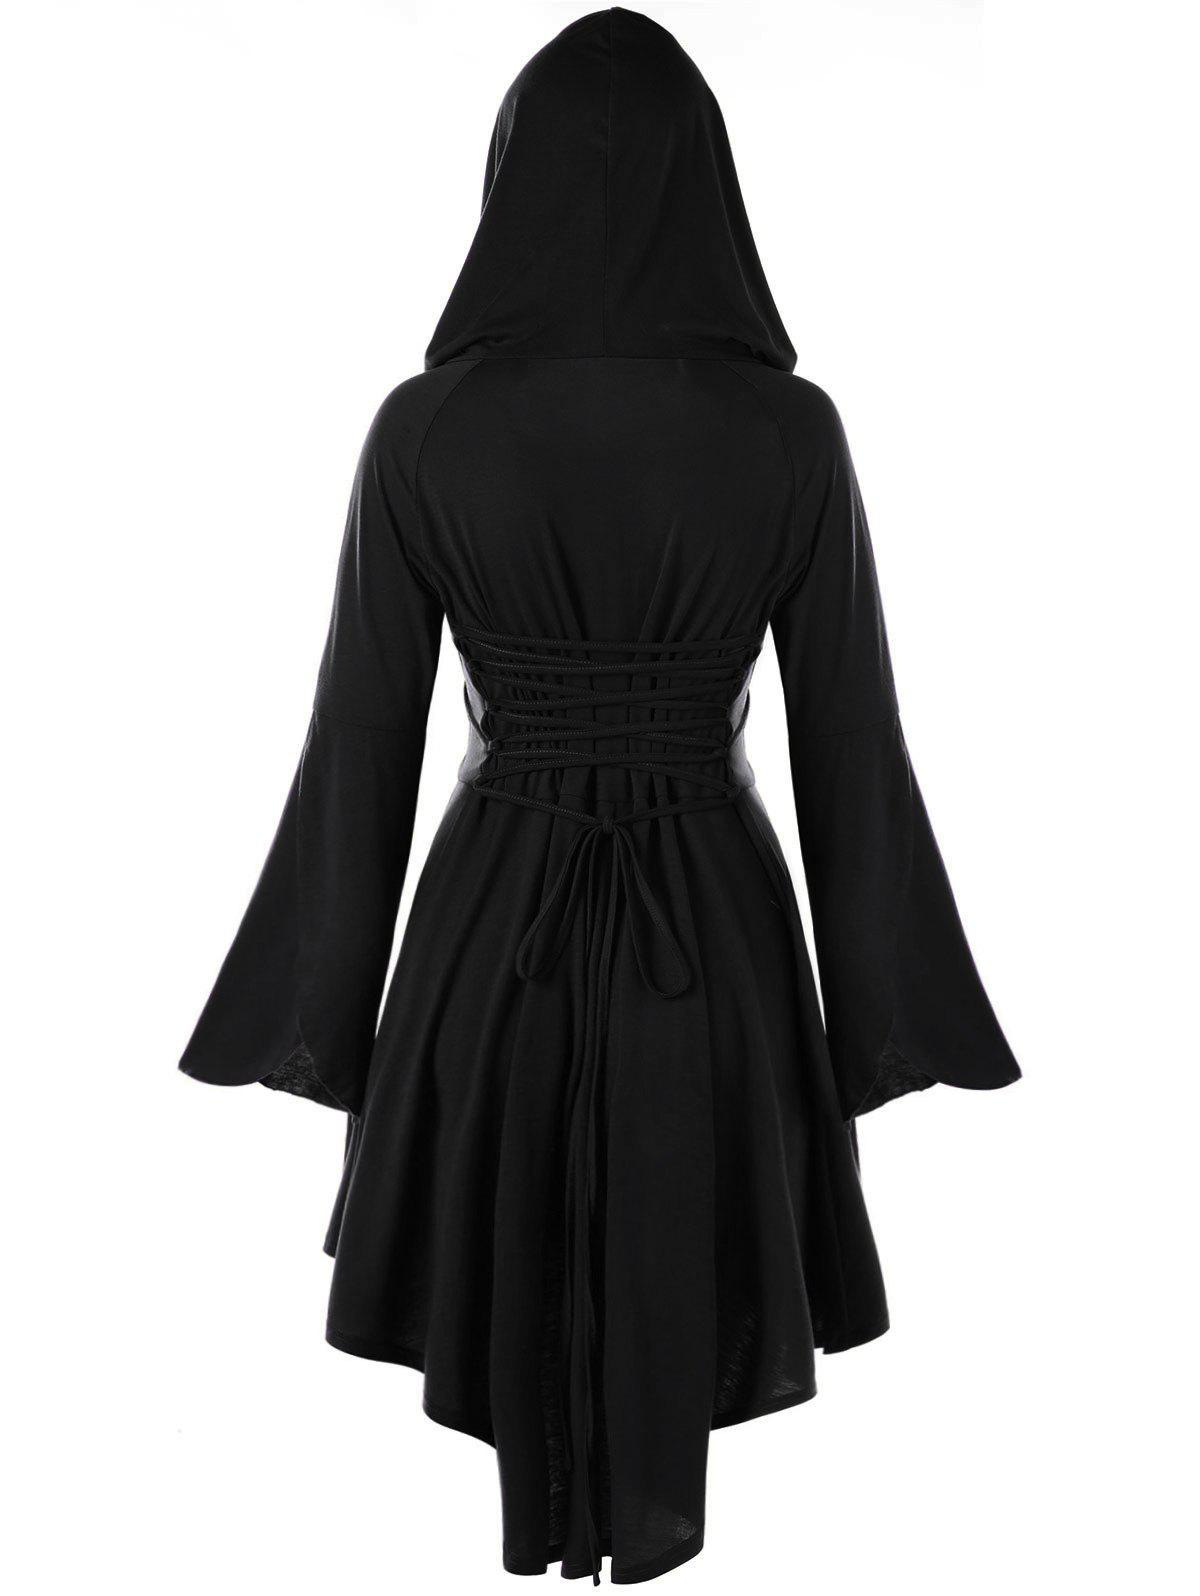 High Low Flare Sleeve Hooded Lace-up DressWOMEN<br><br>Size: 2XL; Color: BLACK; Style: Cute; Material: Polyester,Spandex; Silhouette: Asymmetrical; Dresses Length: Knee-Length; Neckline: Hooded; Sleeve Length: Long Sleeves; Pattern Type: Solid; With Belt: No; Season: Fall,Spring; Weight: 0.4740kg; Package Contents: 1 x Dress;